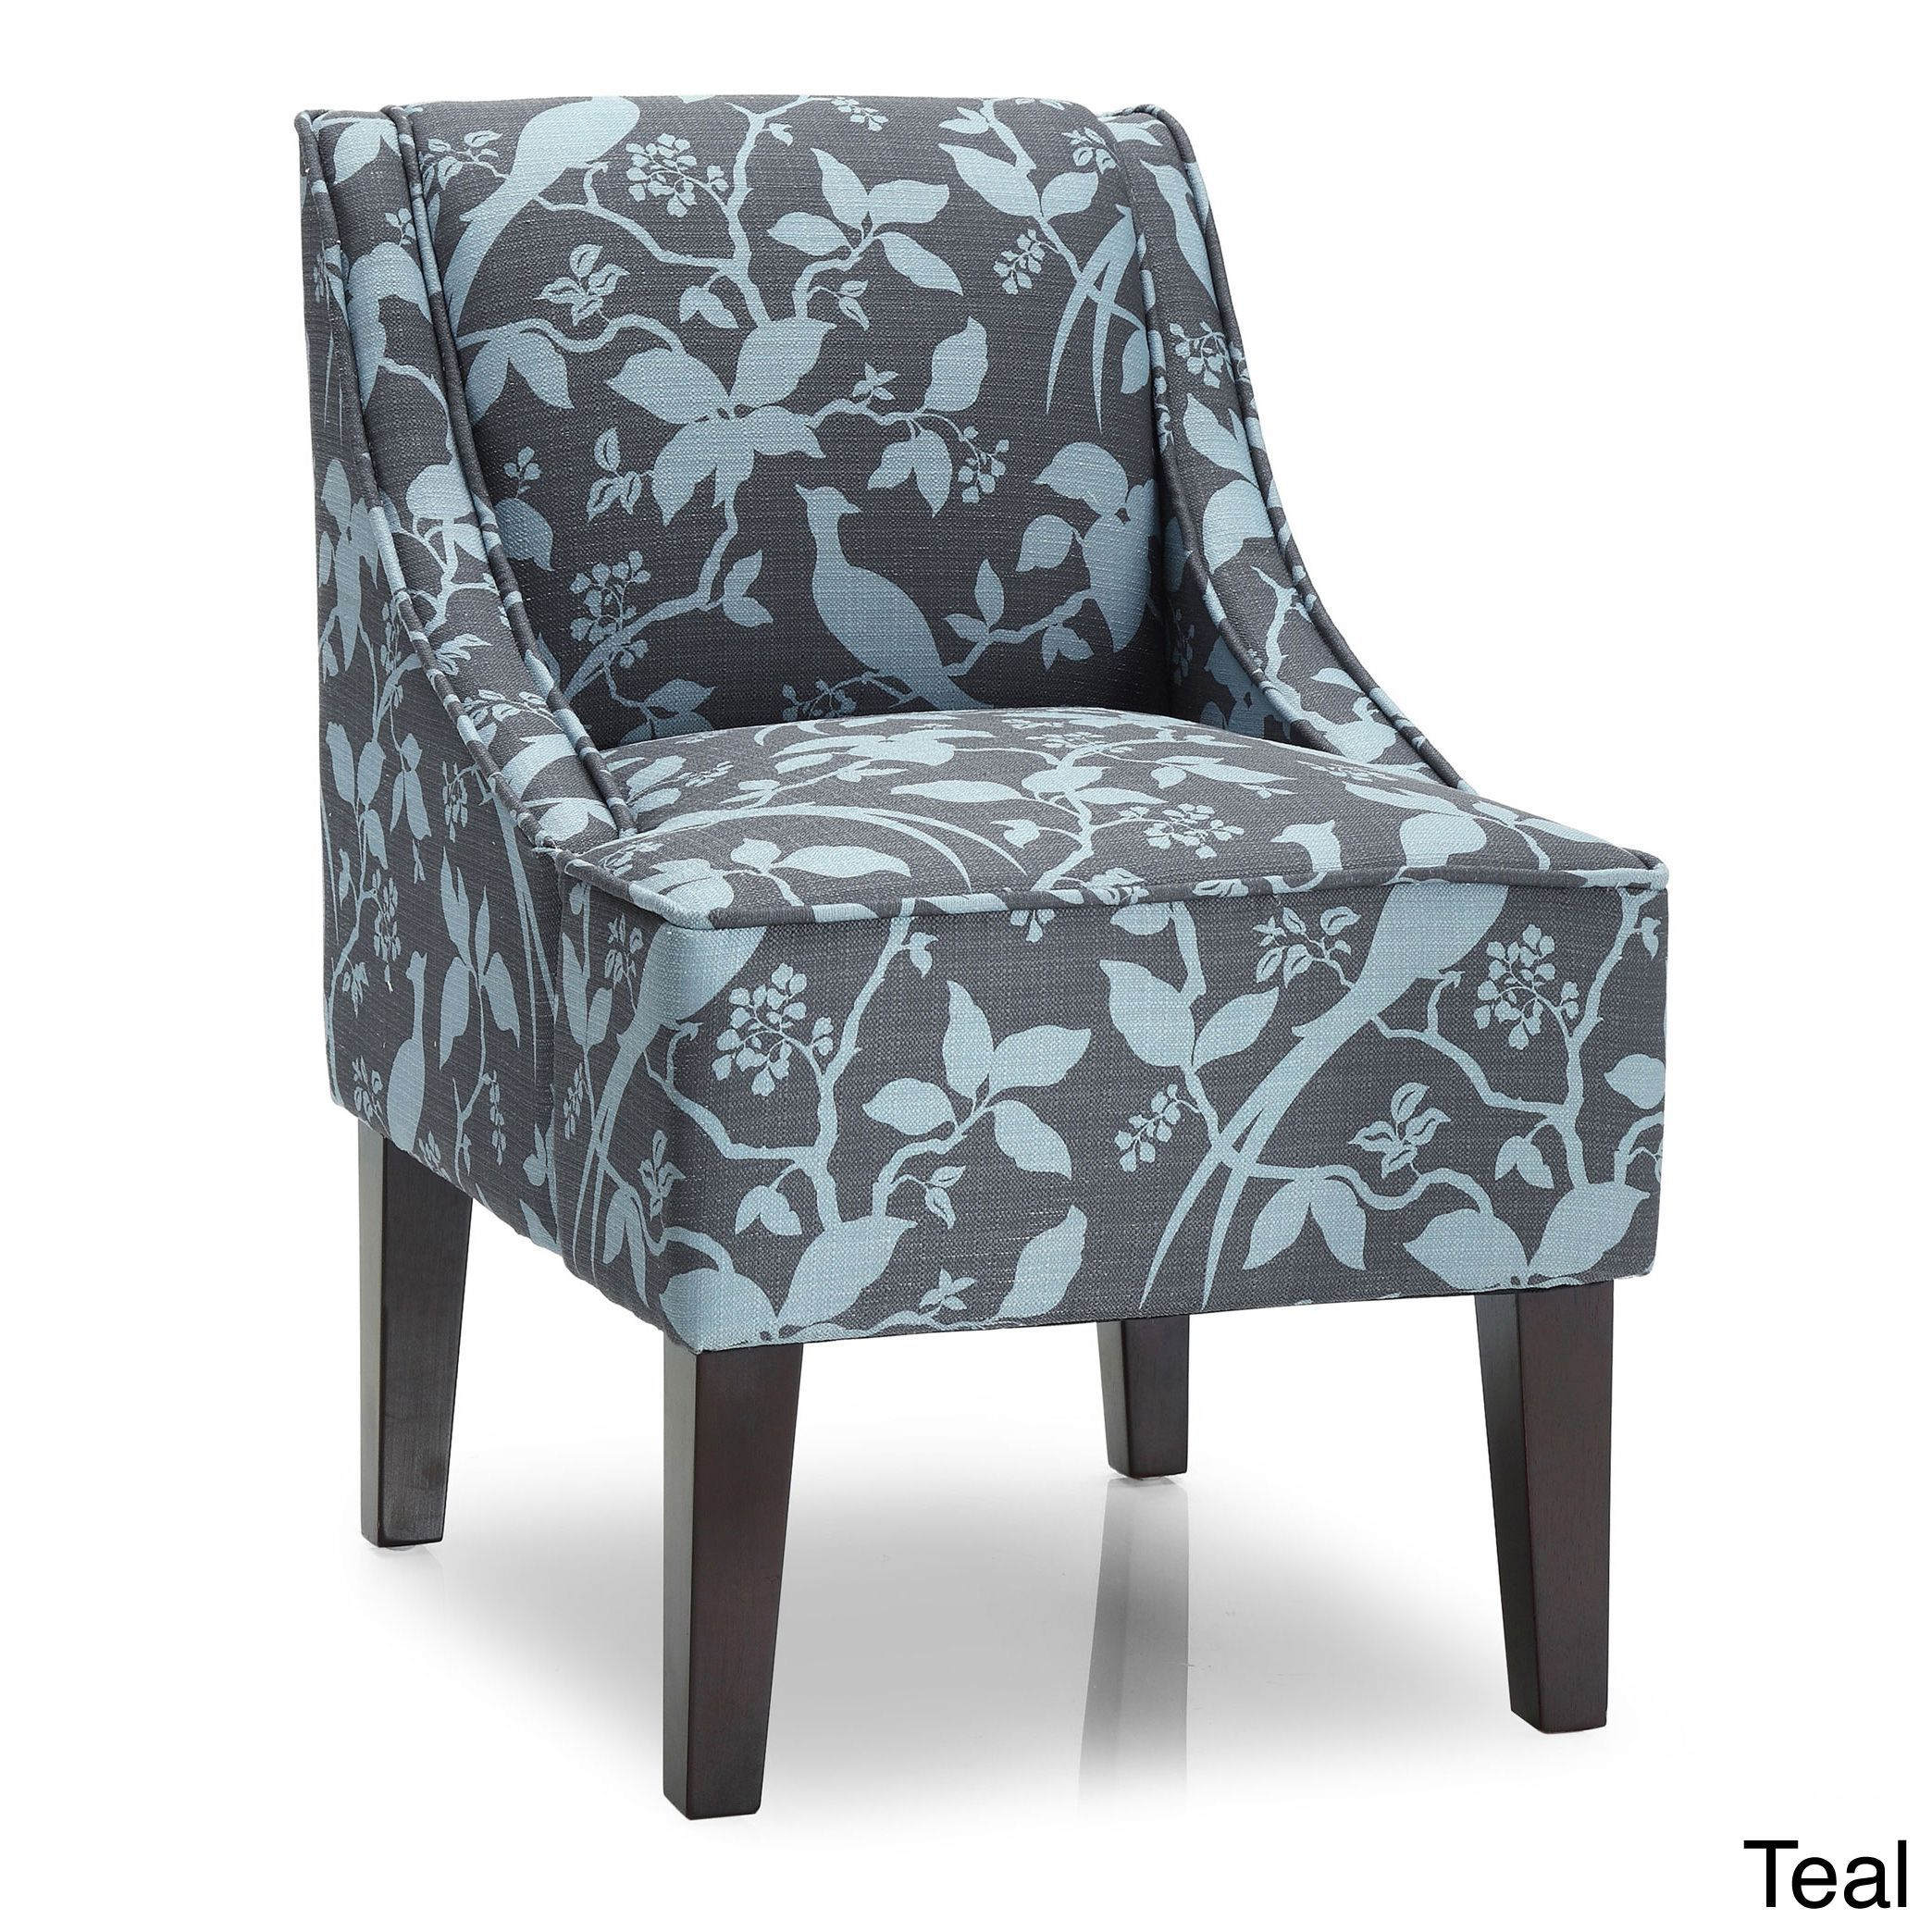 Make A Bold Design Statement In Your Living Space With This Modern Marlow  Accent Chair Featuring